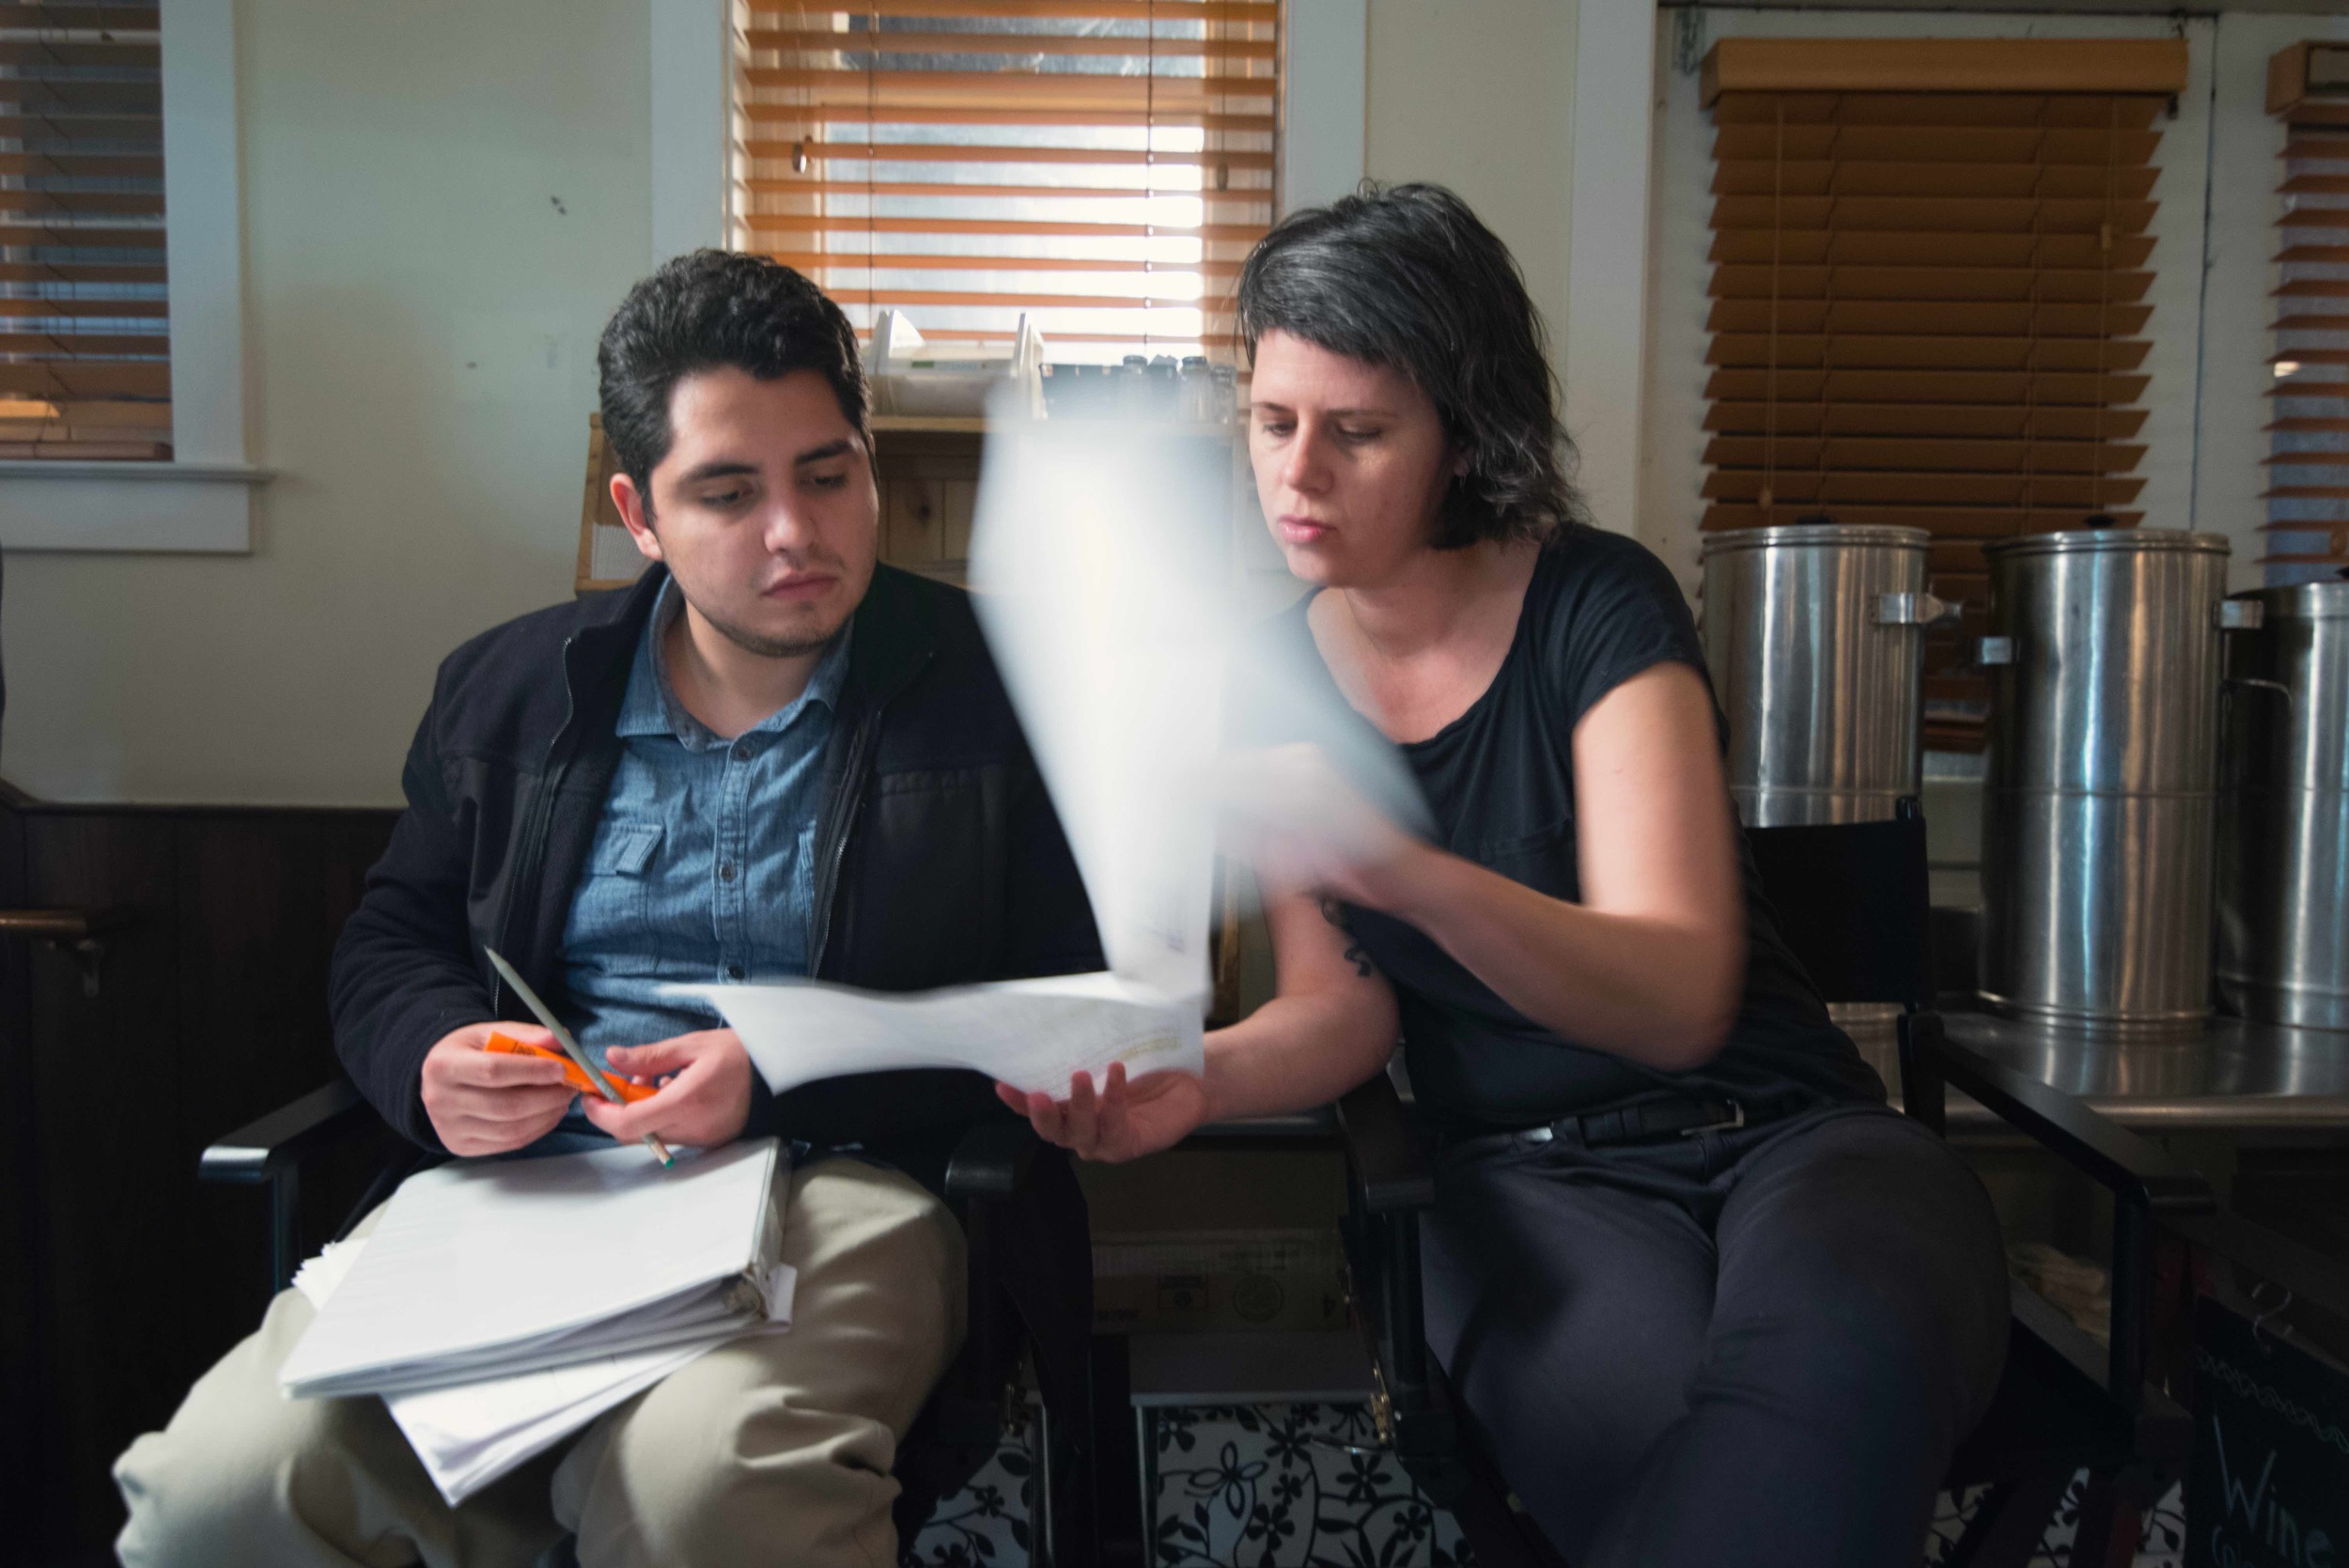 JAVA was produced with The Mason Film Lab in Film and Video Studies at George Mason University. Here Chesler works with Rodrigo Vasquez in script supervising. Image Dixie D. Vereen.